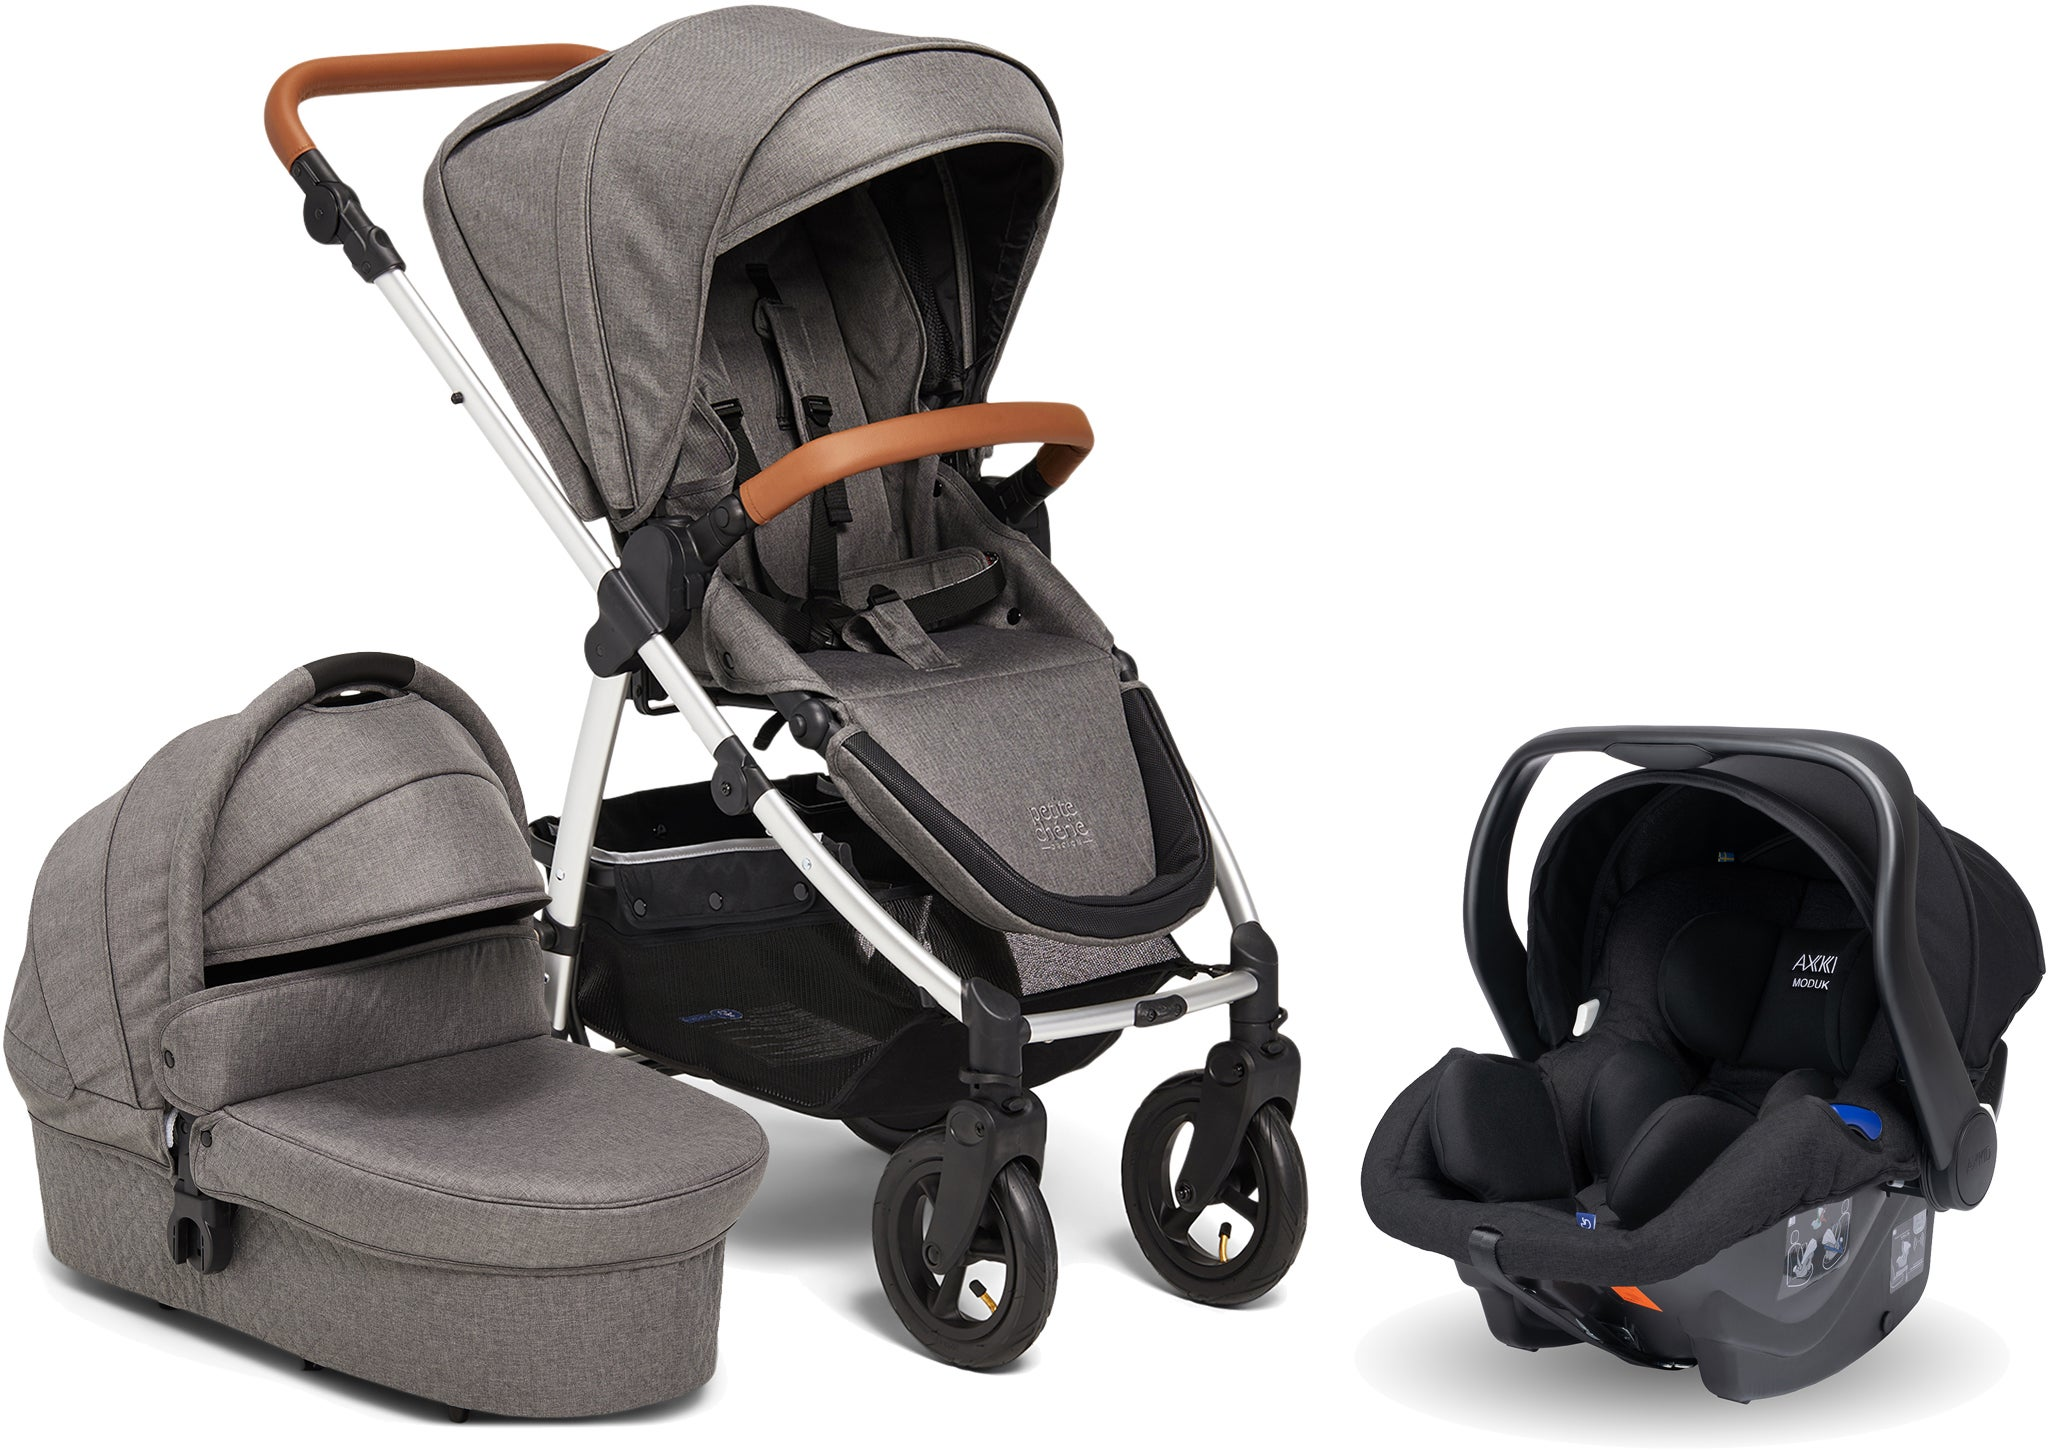 Petite Chérie Heritage 2 Duovagn Inkl. Axkid Modukid Babyskydd, Grey/Silver